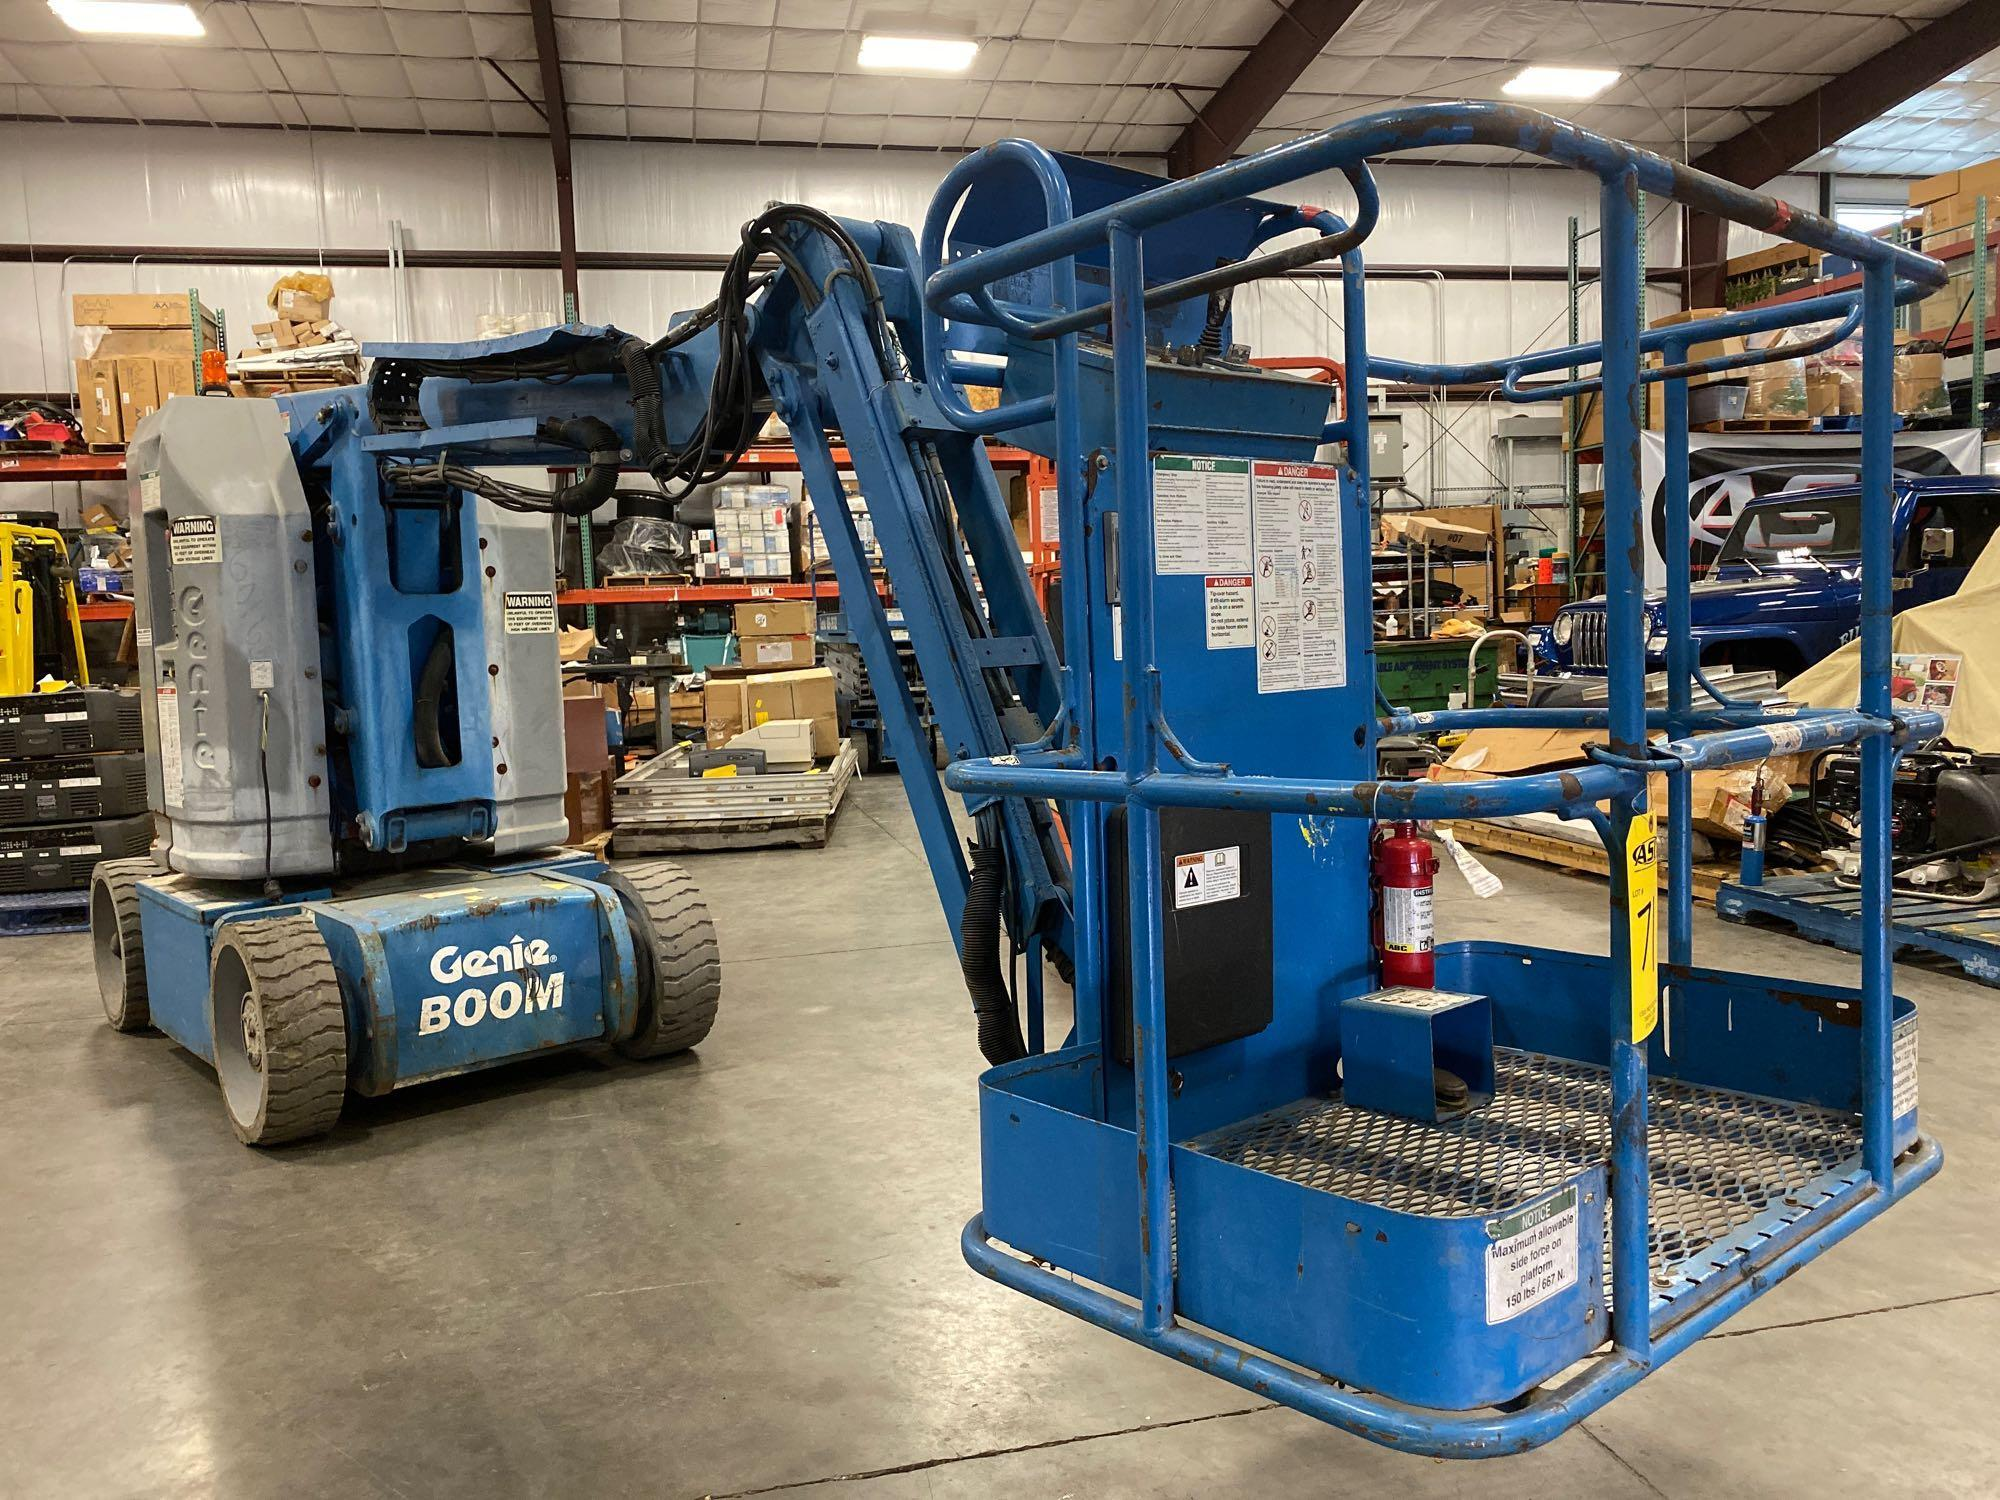 Lot 71 - GENIE Z-30/20N ELECTRIC ARTICULATING BOOM LIFT, 30' PLATFORM HEIGHT, BUILT IN BATTERY CHARGER, RUNS